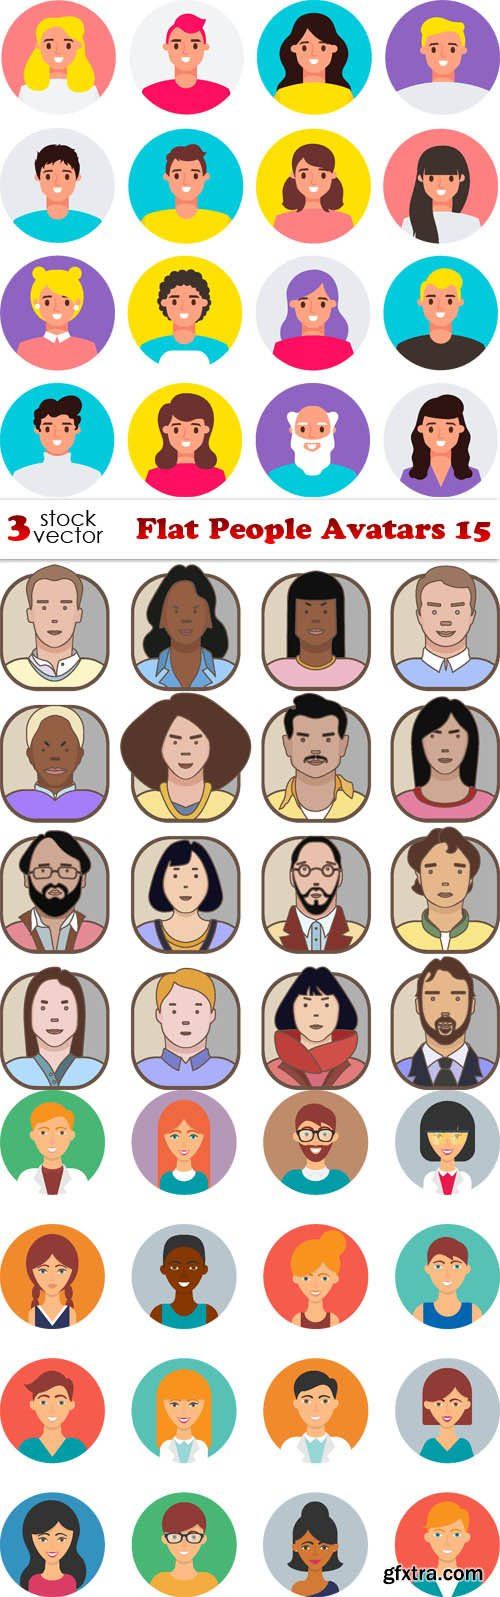 Vectors - Flat People Avatars 15